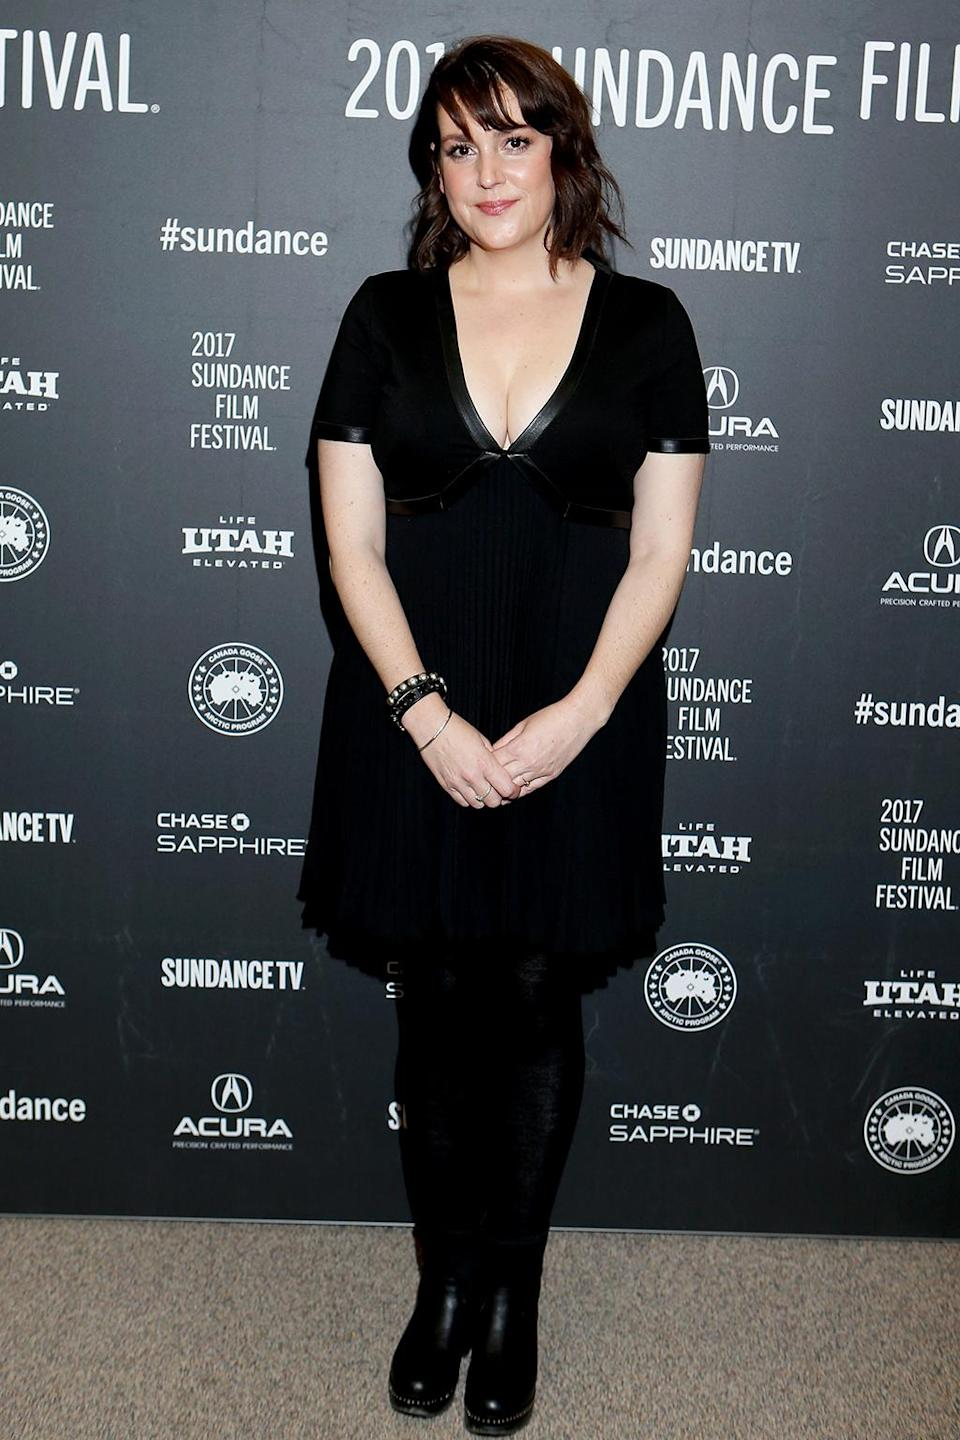 <p>The actress, who broke through in the 1994 Sundance sensation 'Heavenly Creatures,' is back for the premiere of her latest film, 'I Don't Feel at Home in This World Anymore' on Jan. 19. (Photo: Chad Hurst/Getty Images) </p>